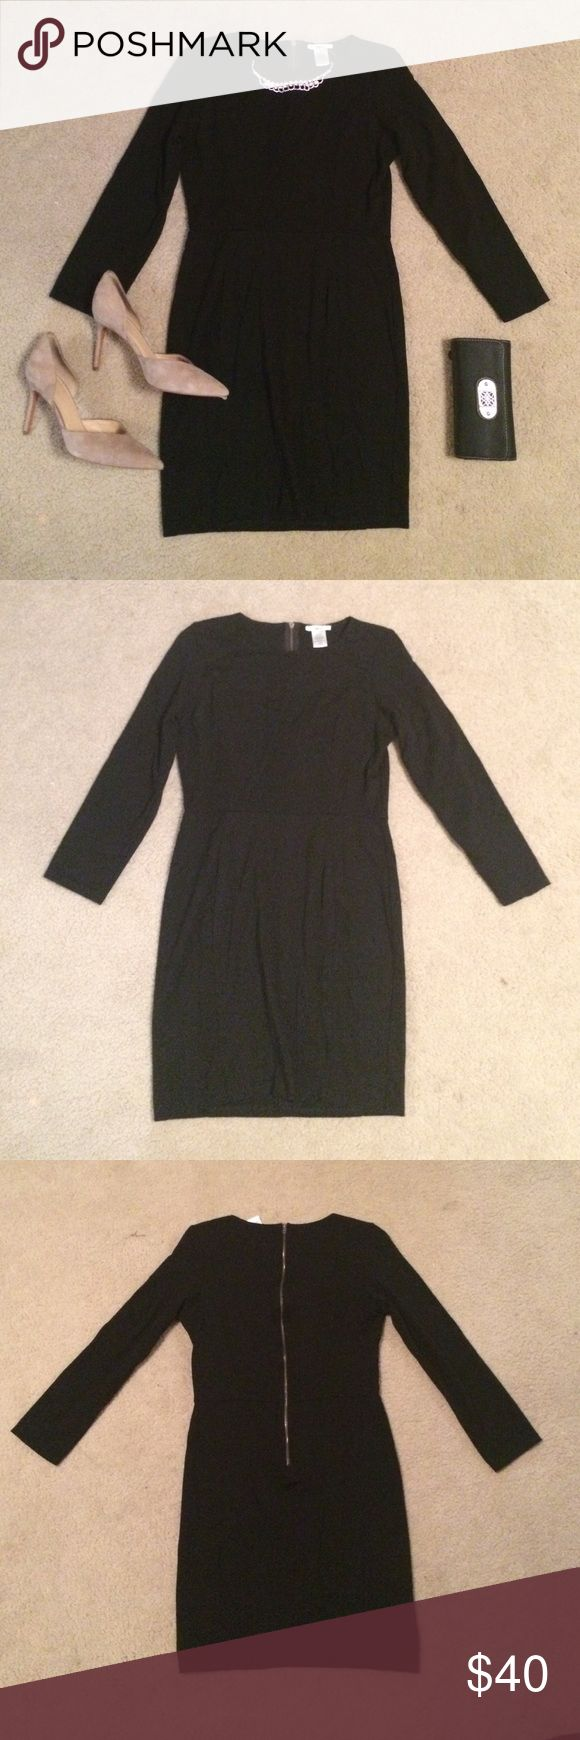 Long Sleeve LBD The tag reads XL but this dress fits as a M/L  so it is listed as a L! Exact measurements upon request! Perfect for all occasions--dress it up or down!  Long sleeve, fitted, zipper back dress.  Material has some stretch as well as curve control. Breathable material. NEW without tags. Post questions in comments!  Make an offer! Bar III Dresses Mini